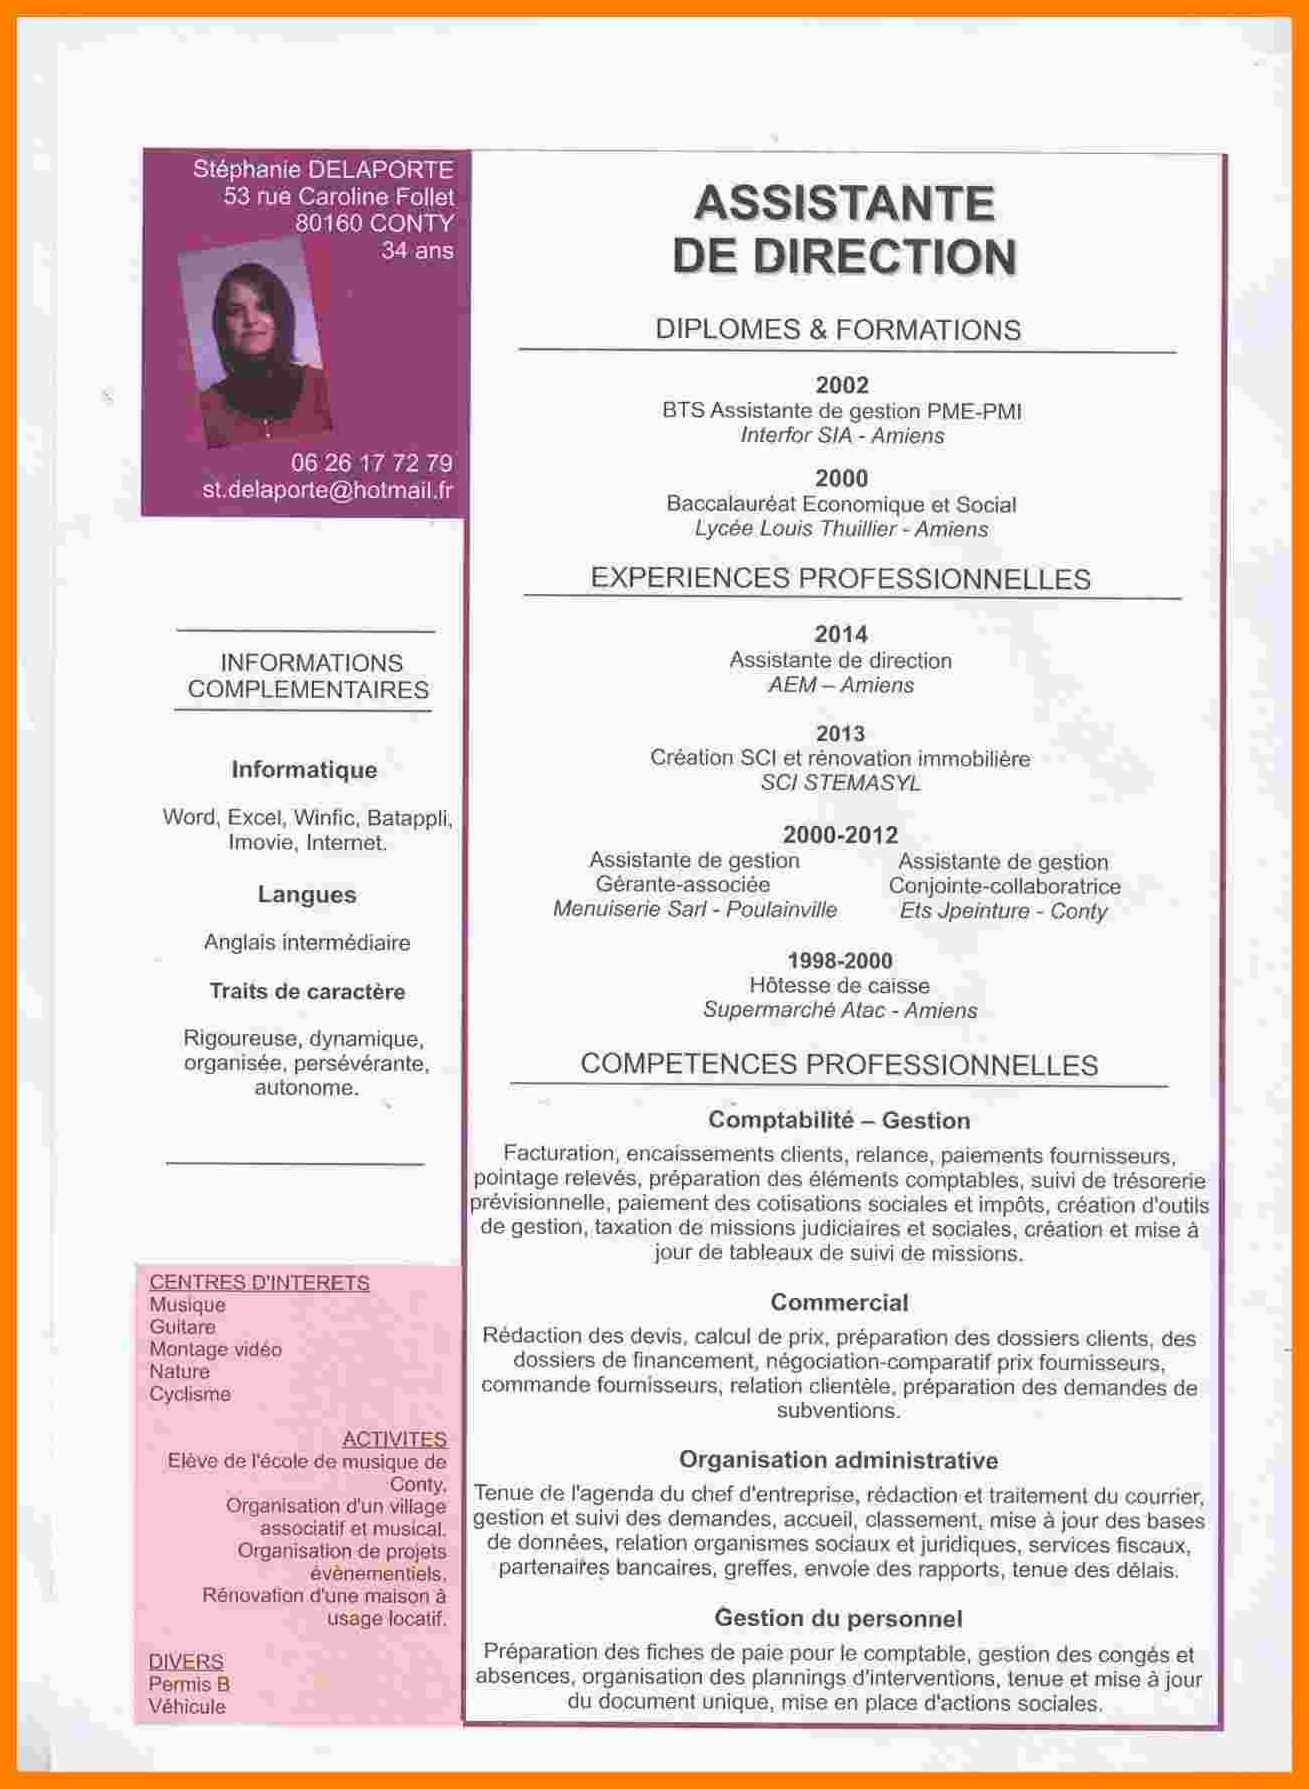 cv d une assistante de direction